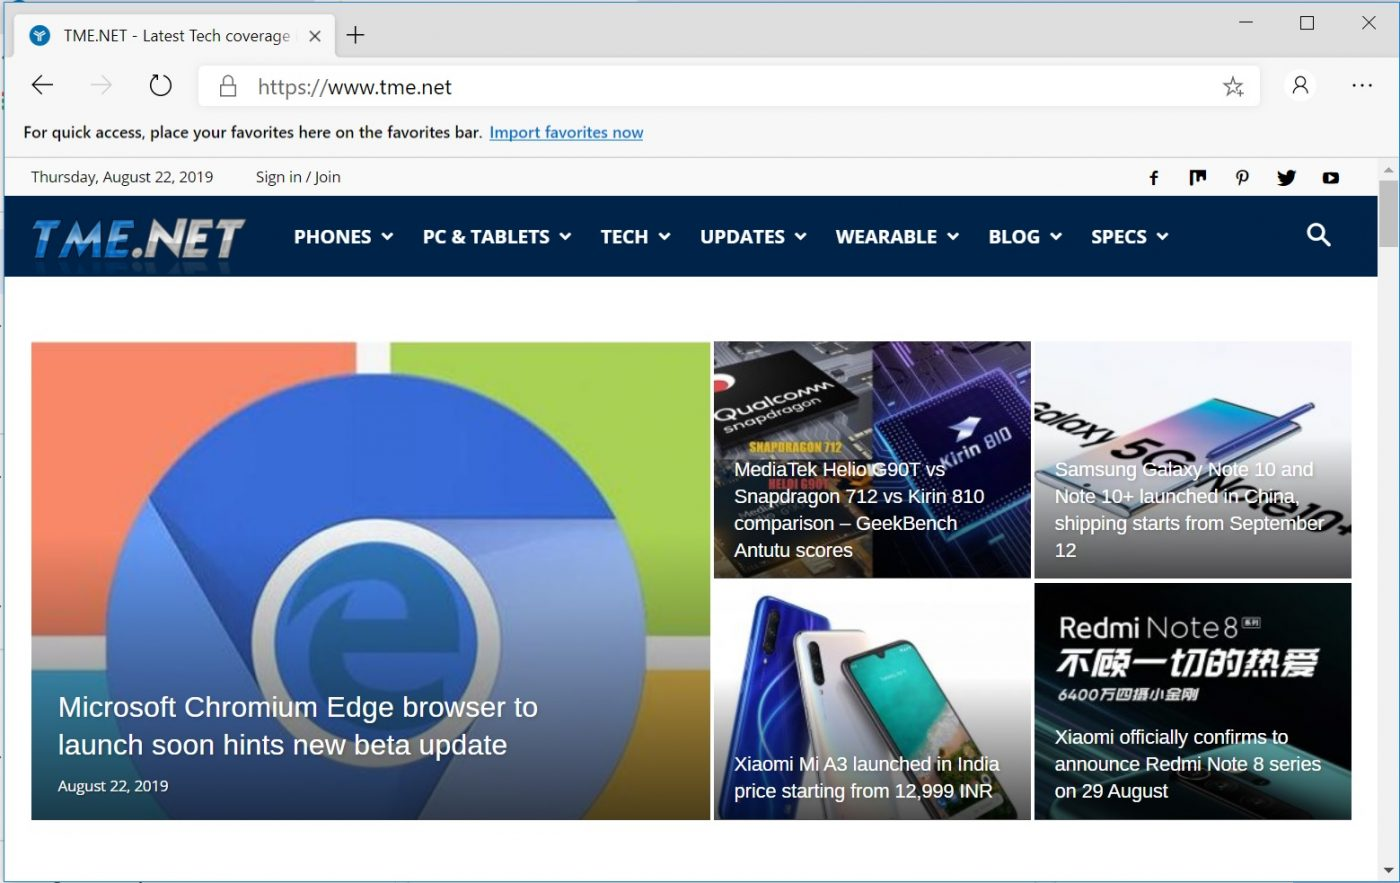 Microsoft Chromium Edge browser to launch soon hints new